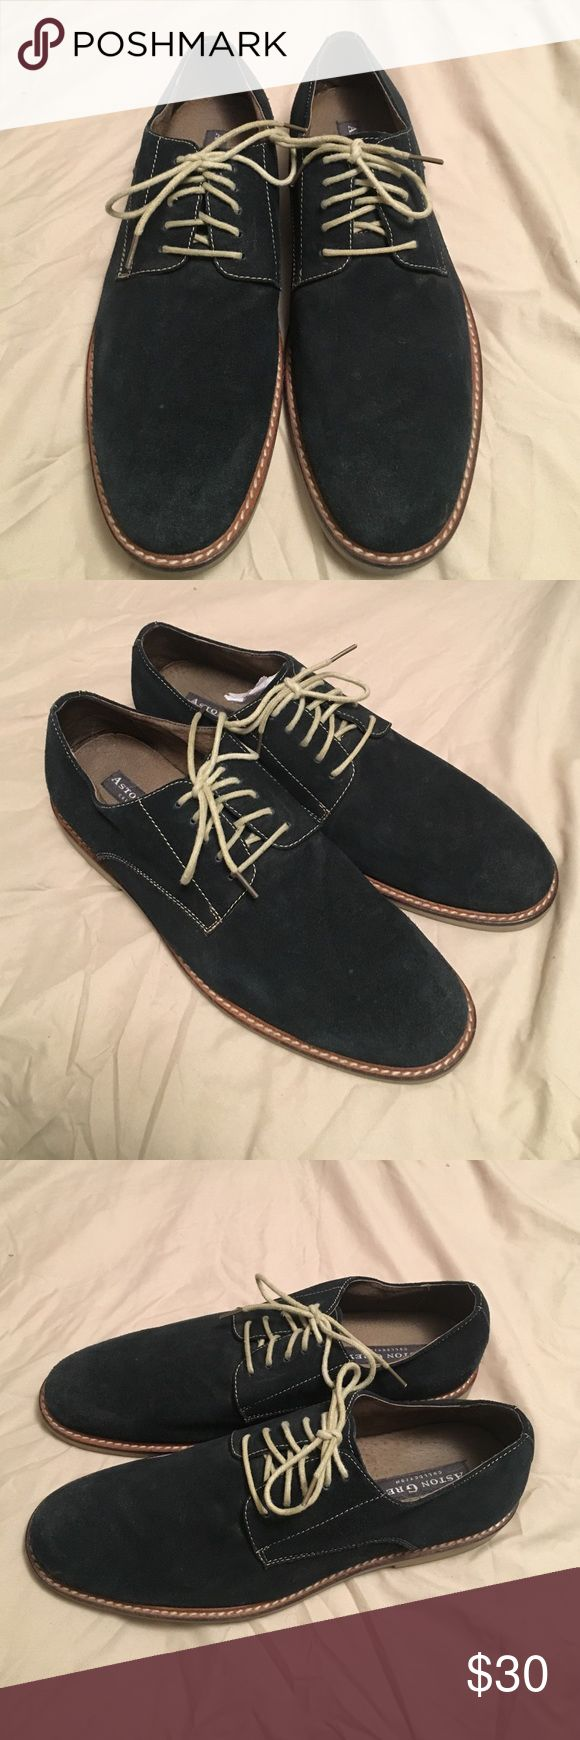 Navy Suede shoes from Aston Grey Navy suede shoes from Aston Grey, size 9, Light wear, condition is good Aston grey Shoes Oxfords & Derbys